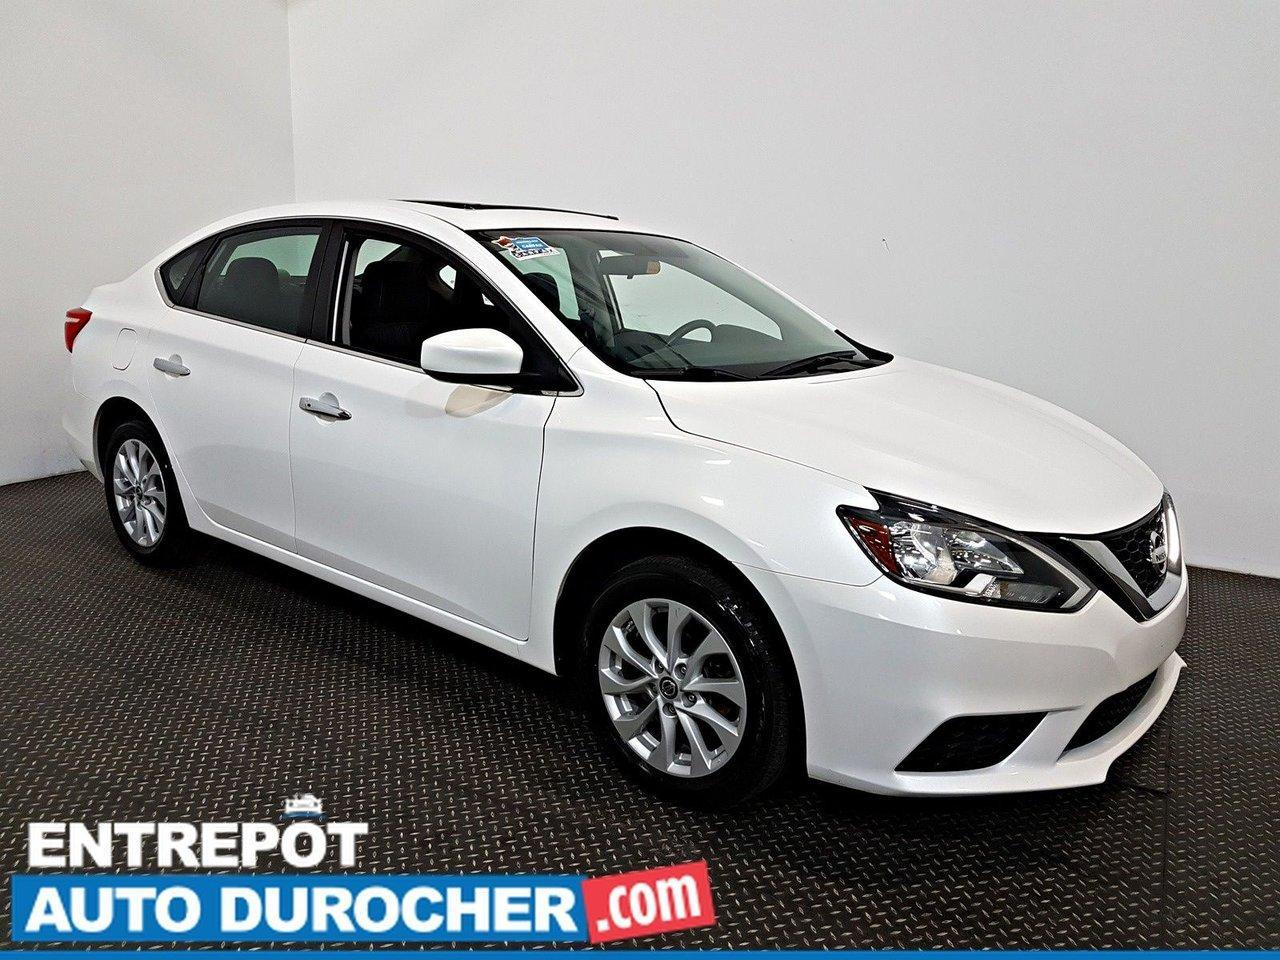 used 2018 nissan sentra sv nav -toit ouvrant - a c - caméra de recul for sale in laval, quebec carpages.ca